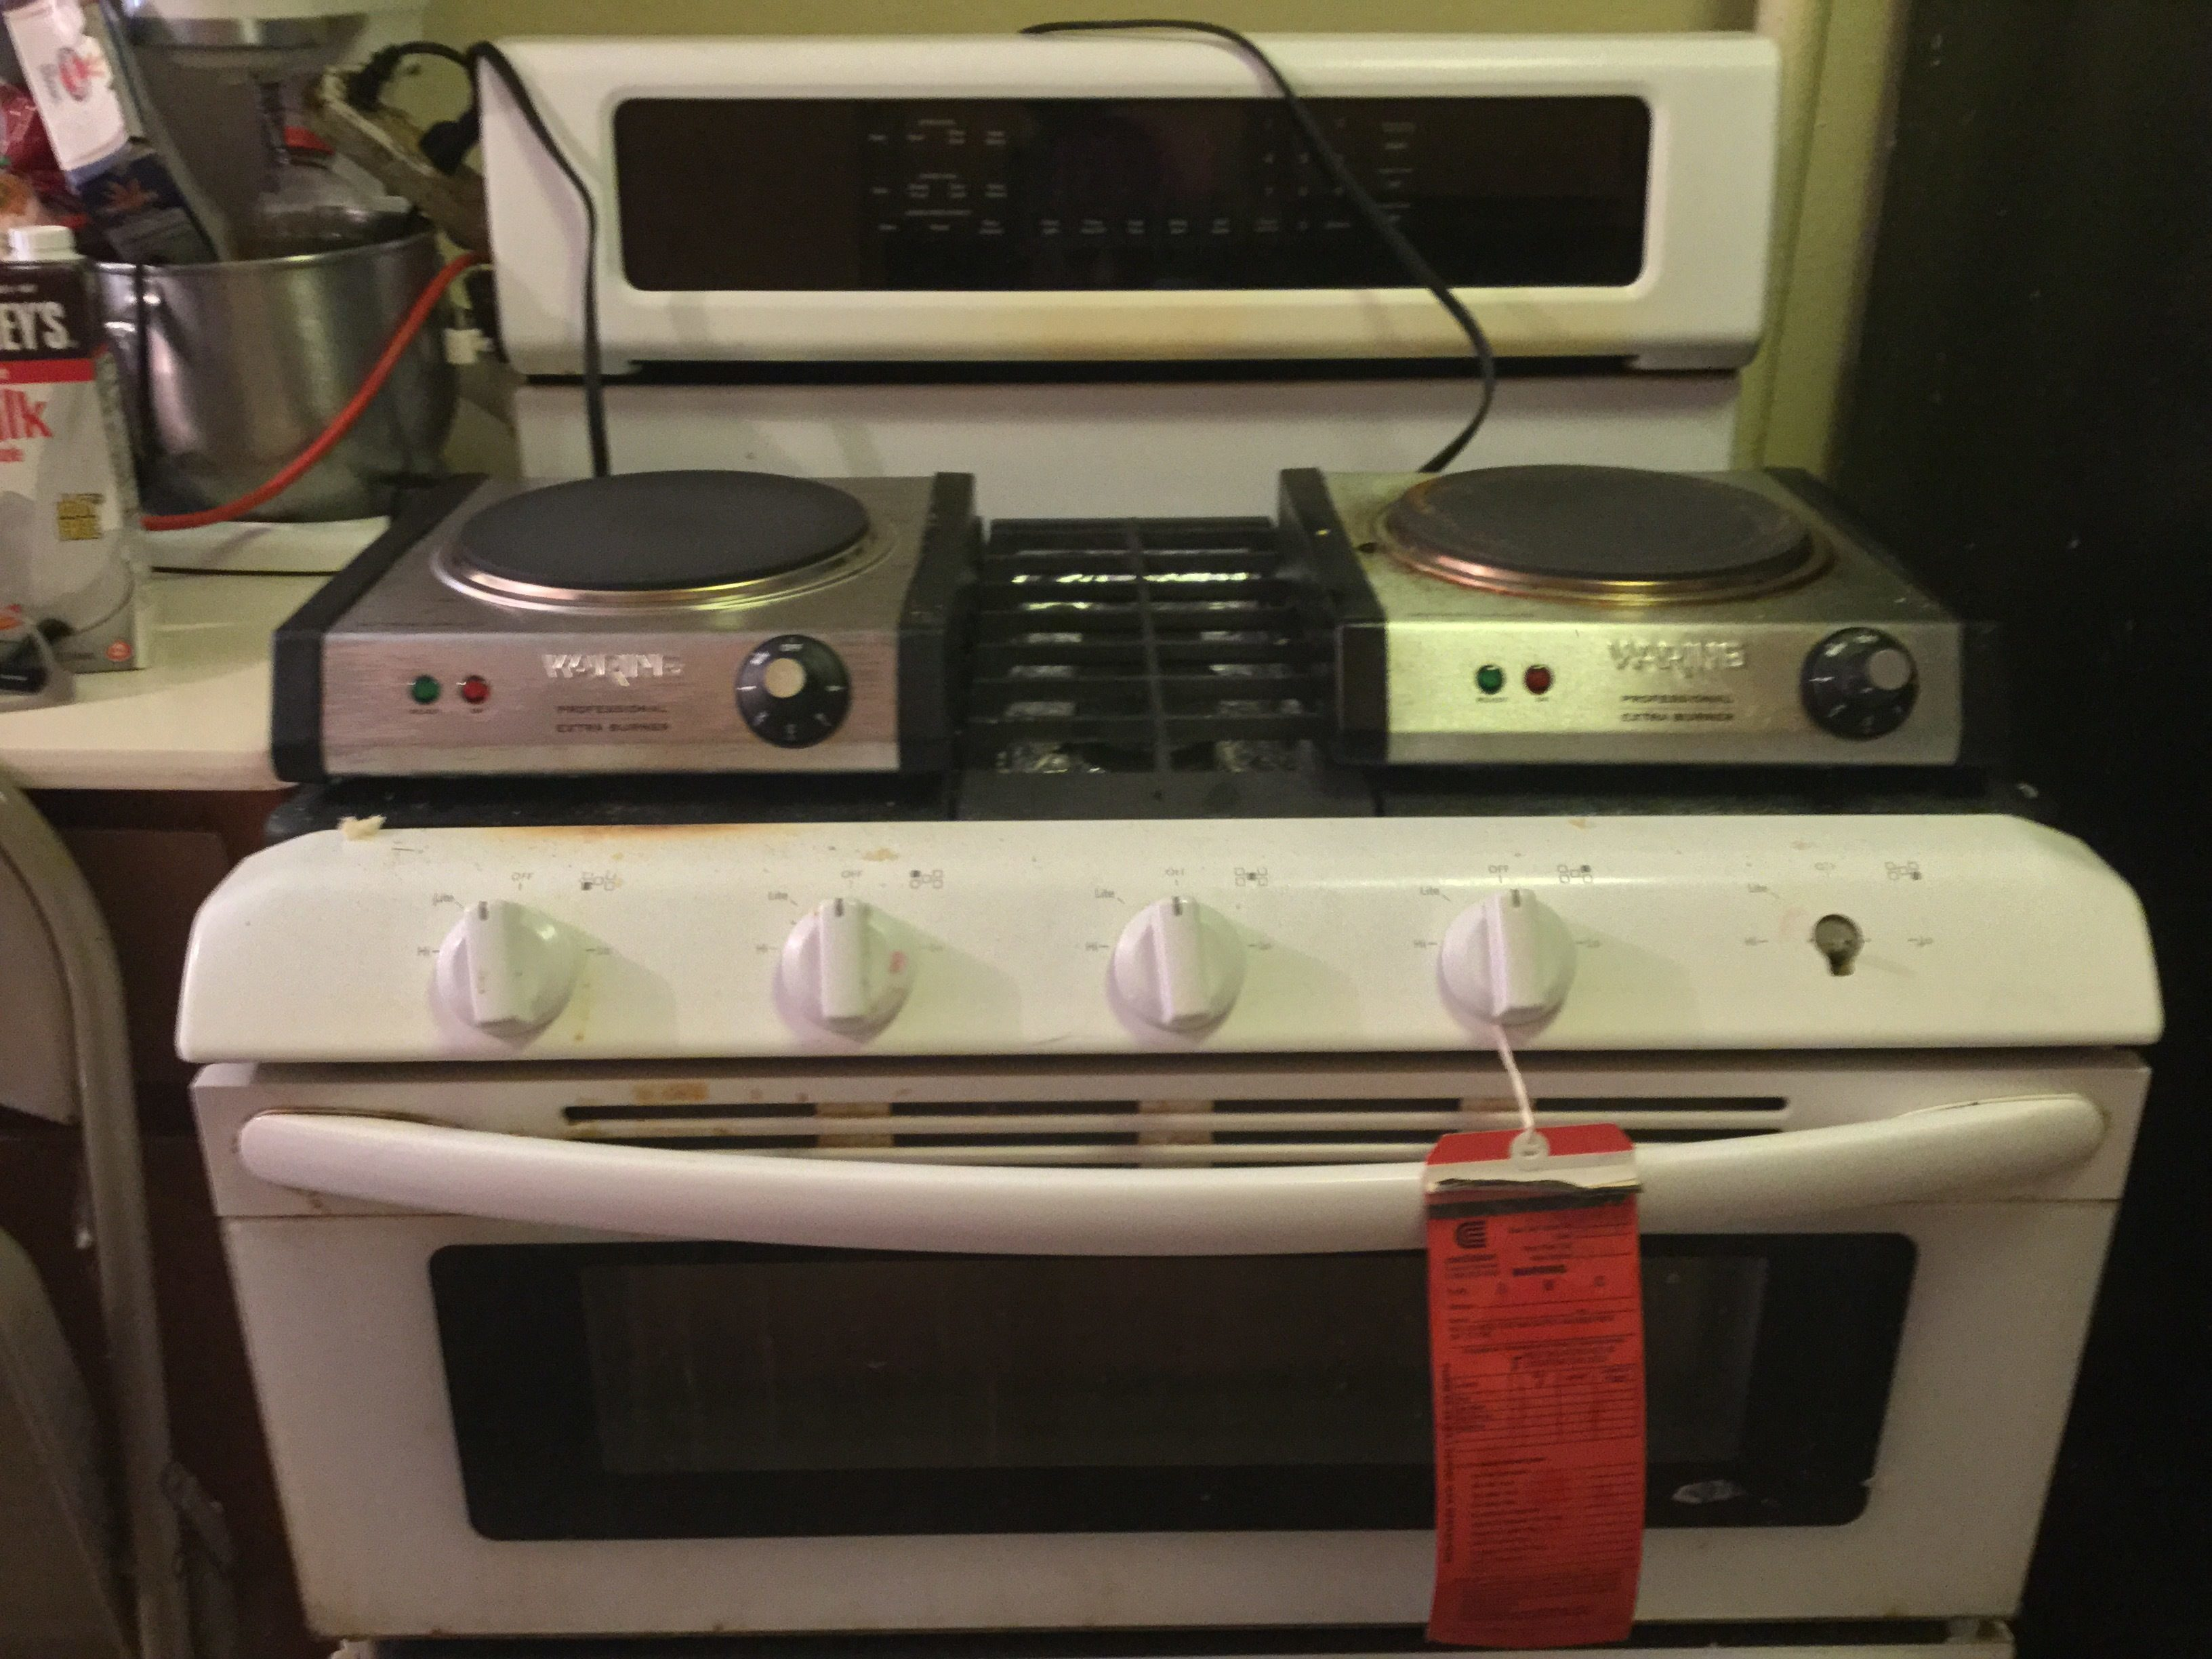 Sears Appliance Reviews Top 5100 Reviews And Complaints About Sears Page 2